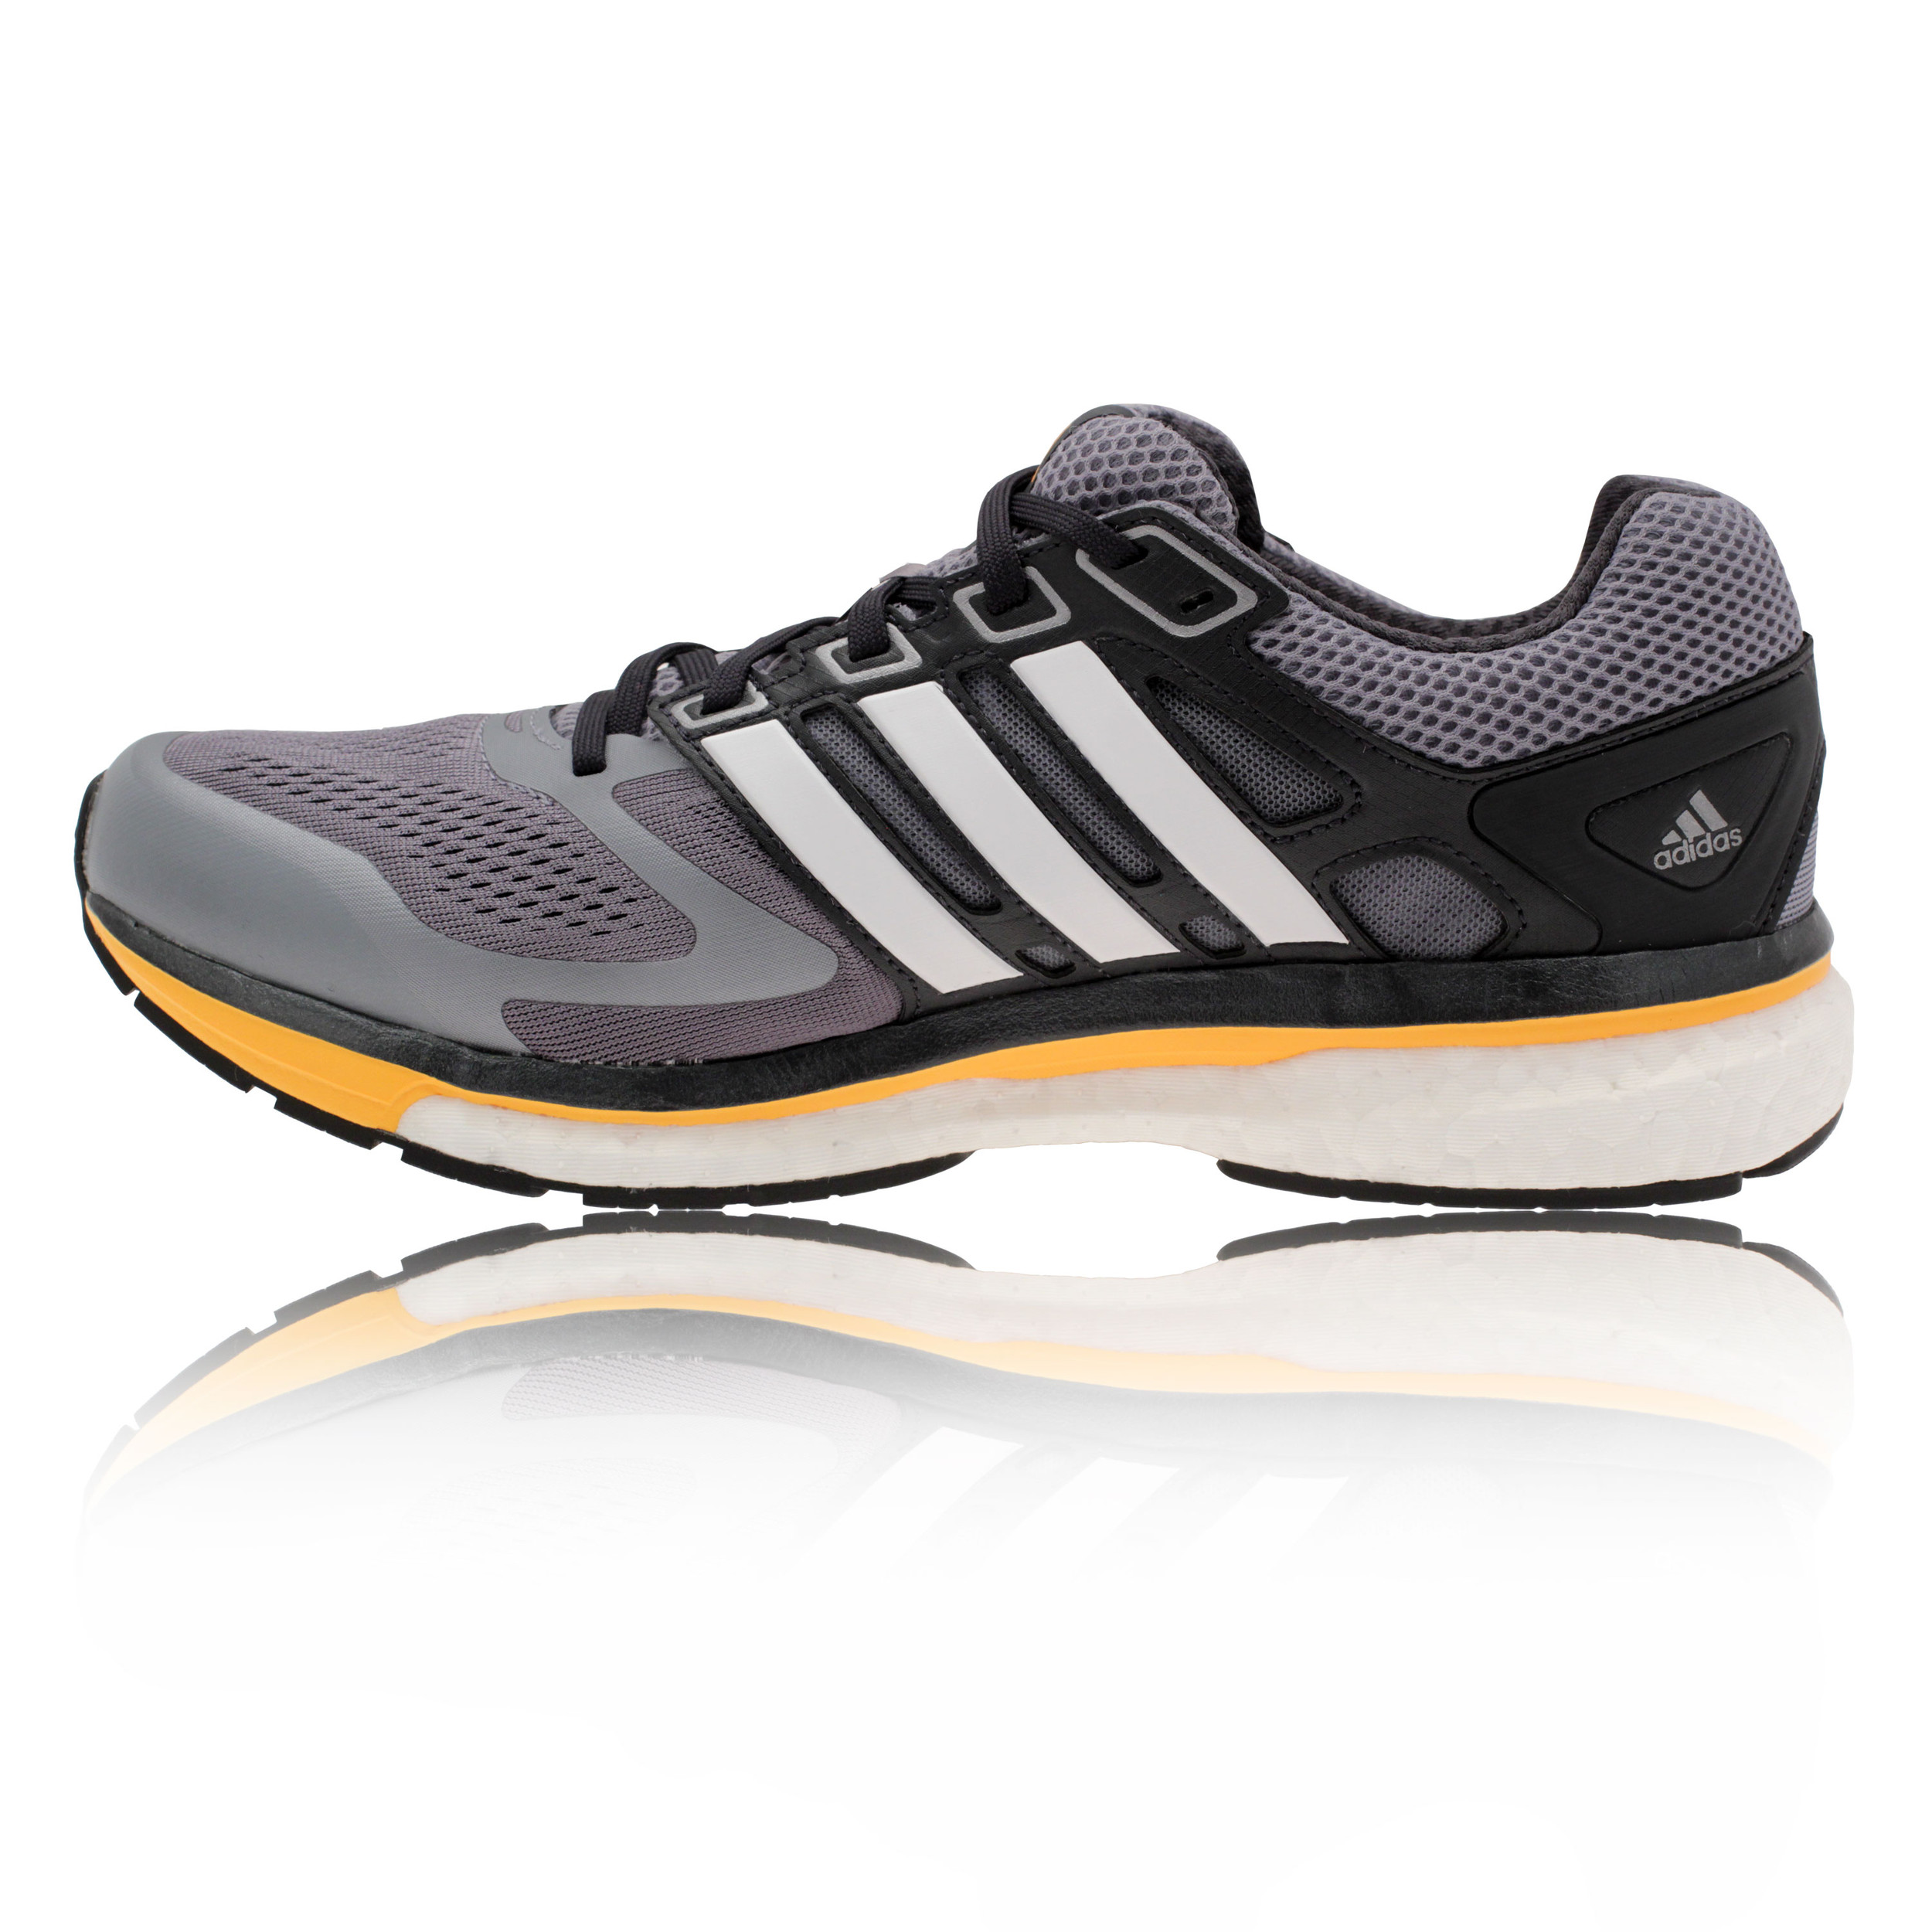 Adidas Supernova Glide 6 Boost Running Shoes - 40% Off ...